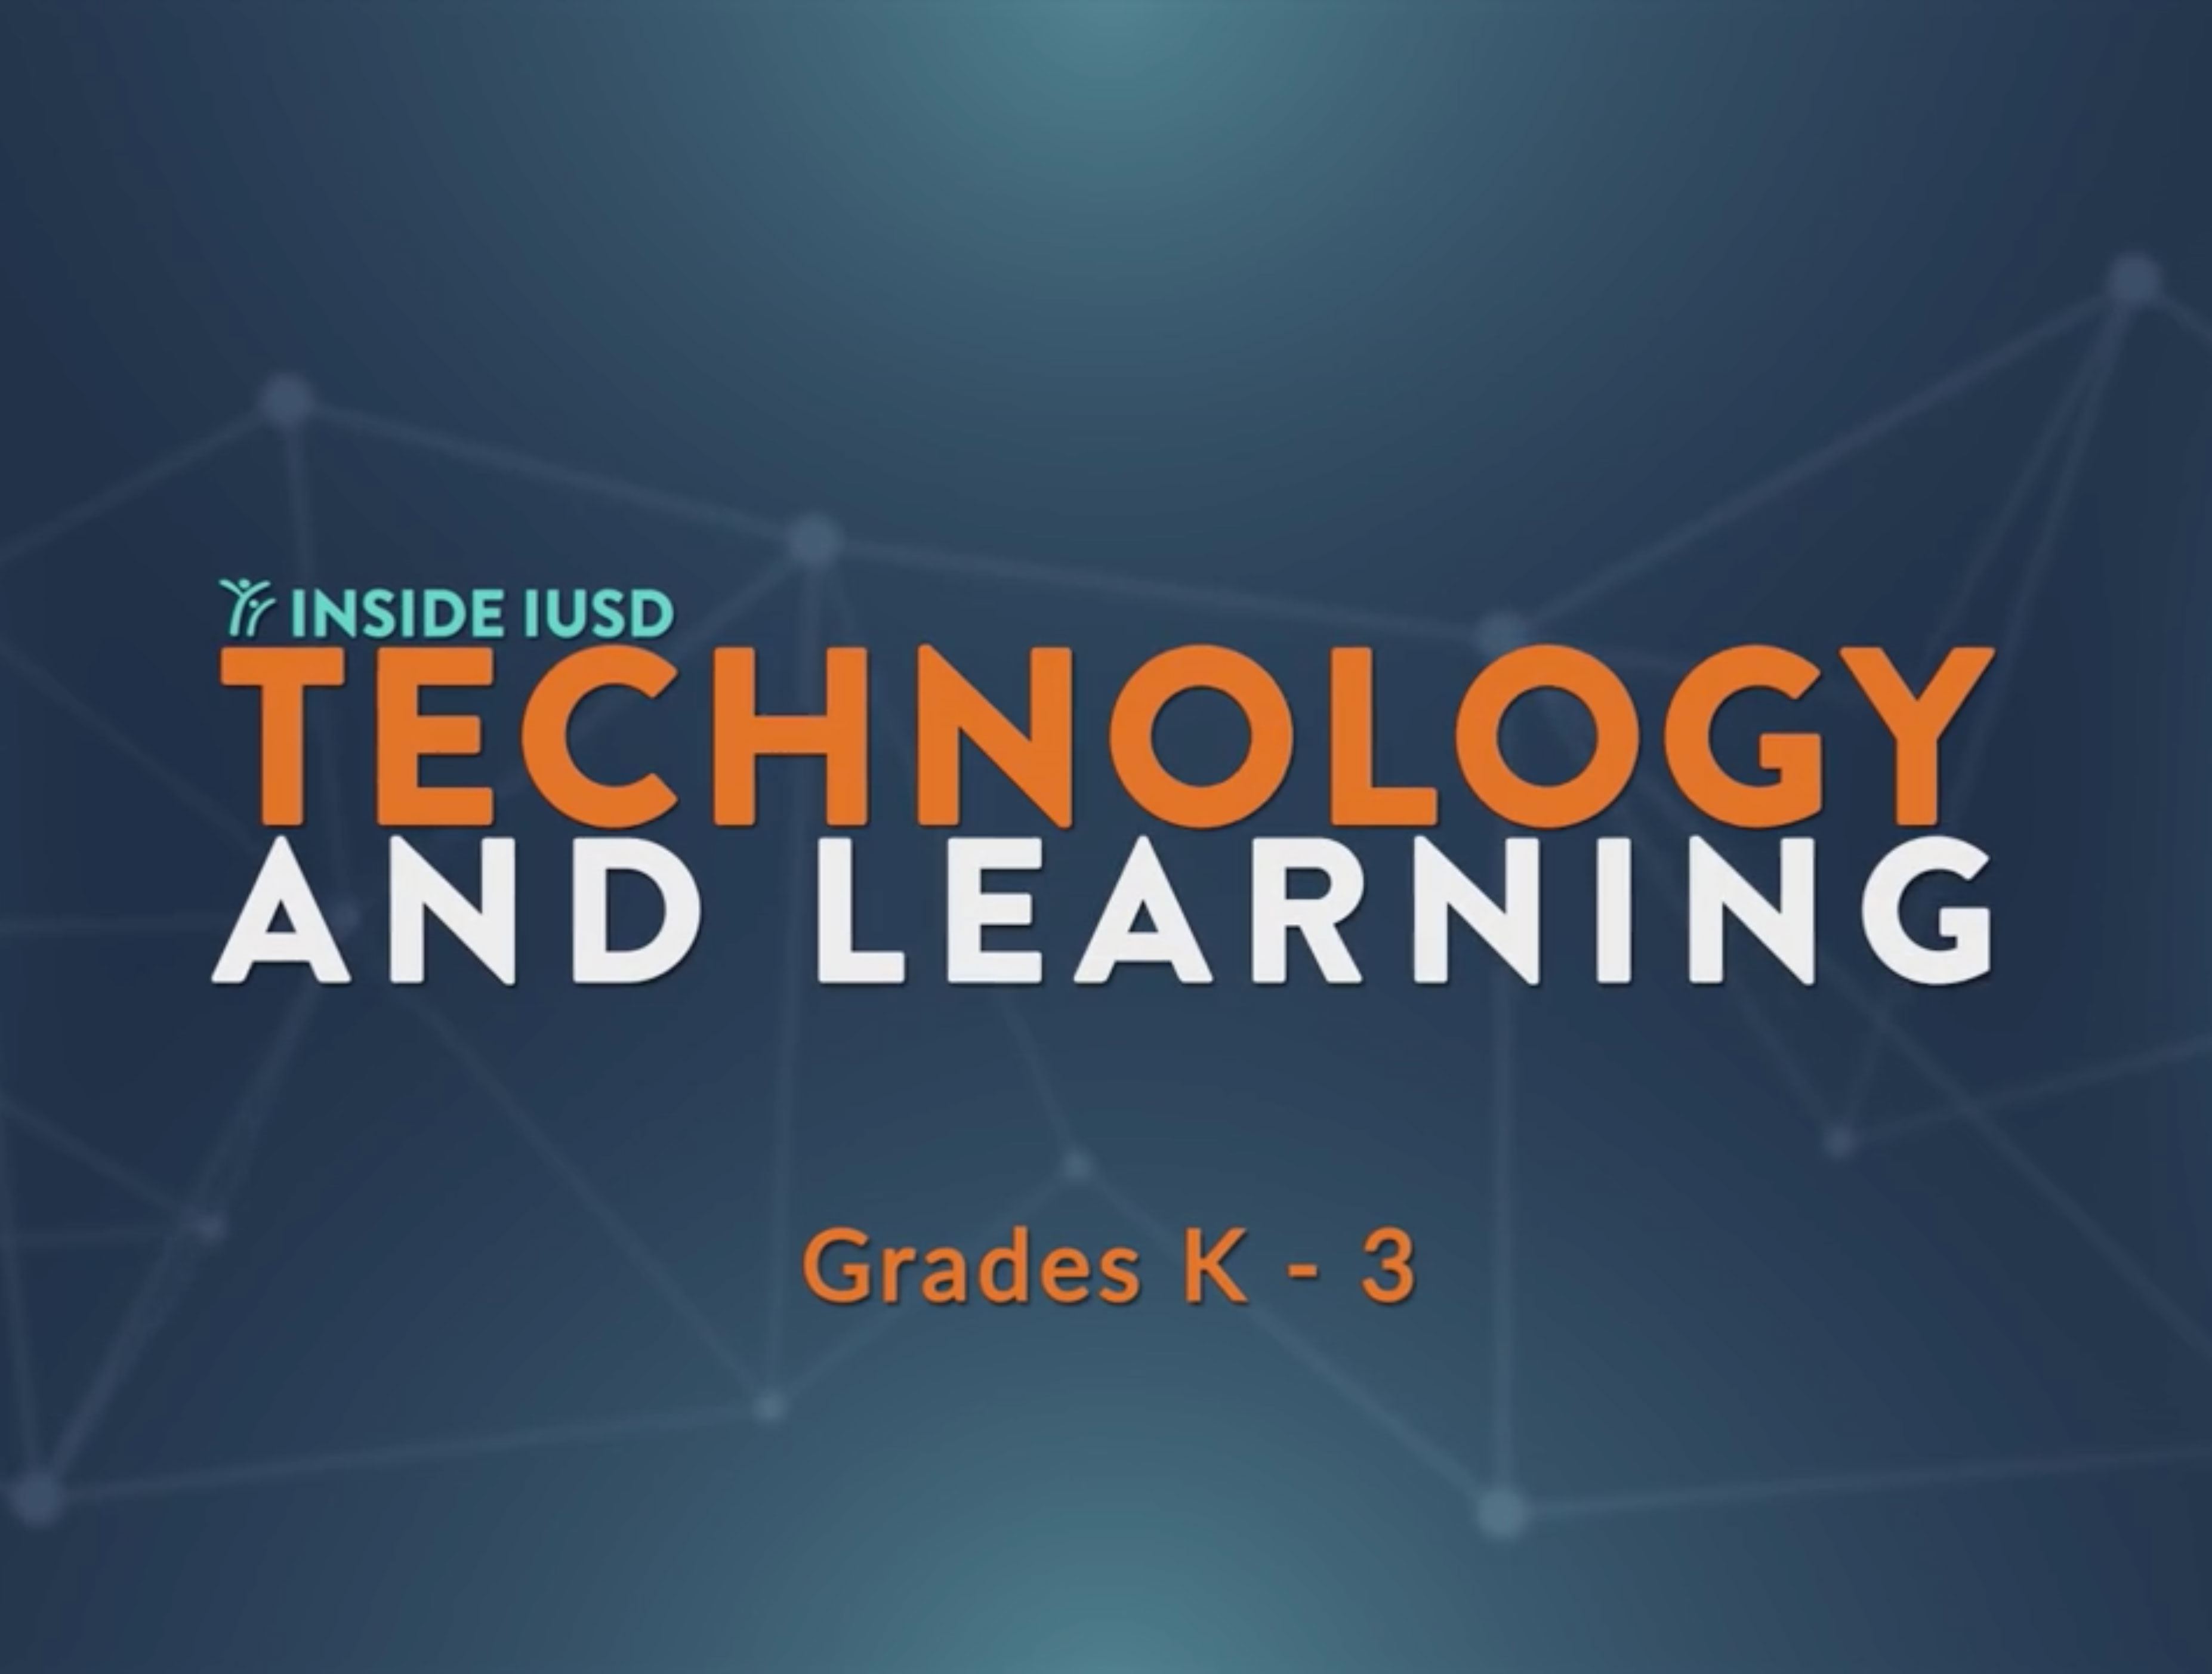 Technology and Learning k-3